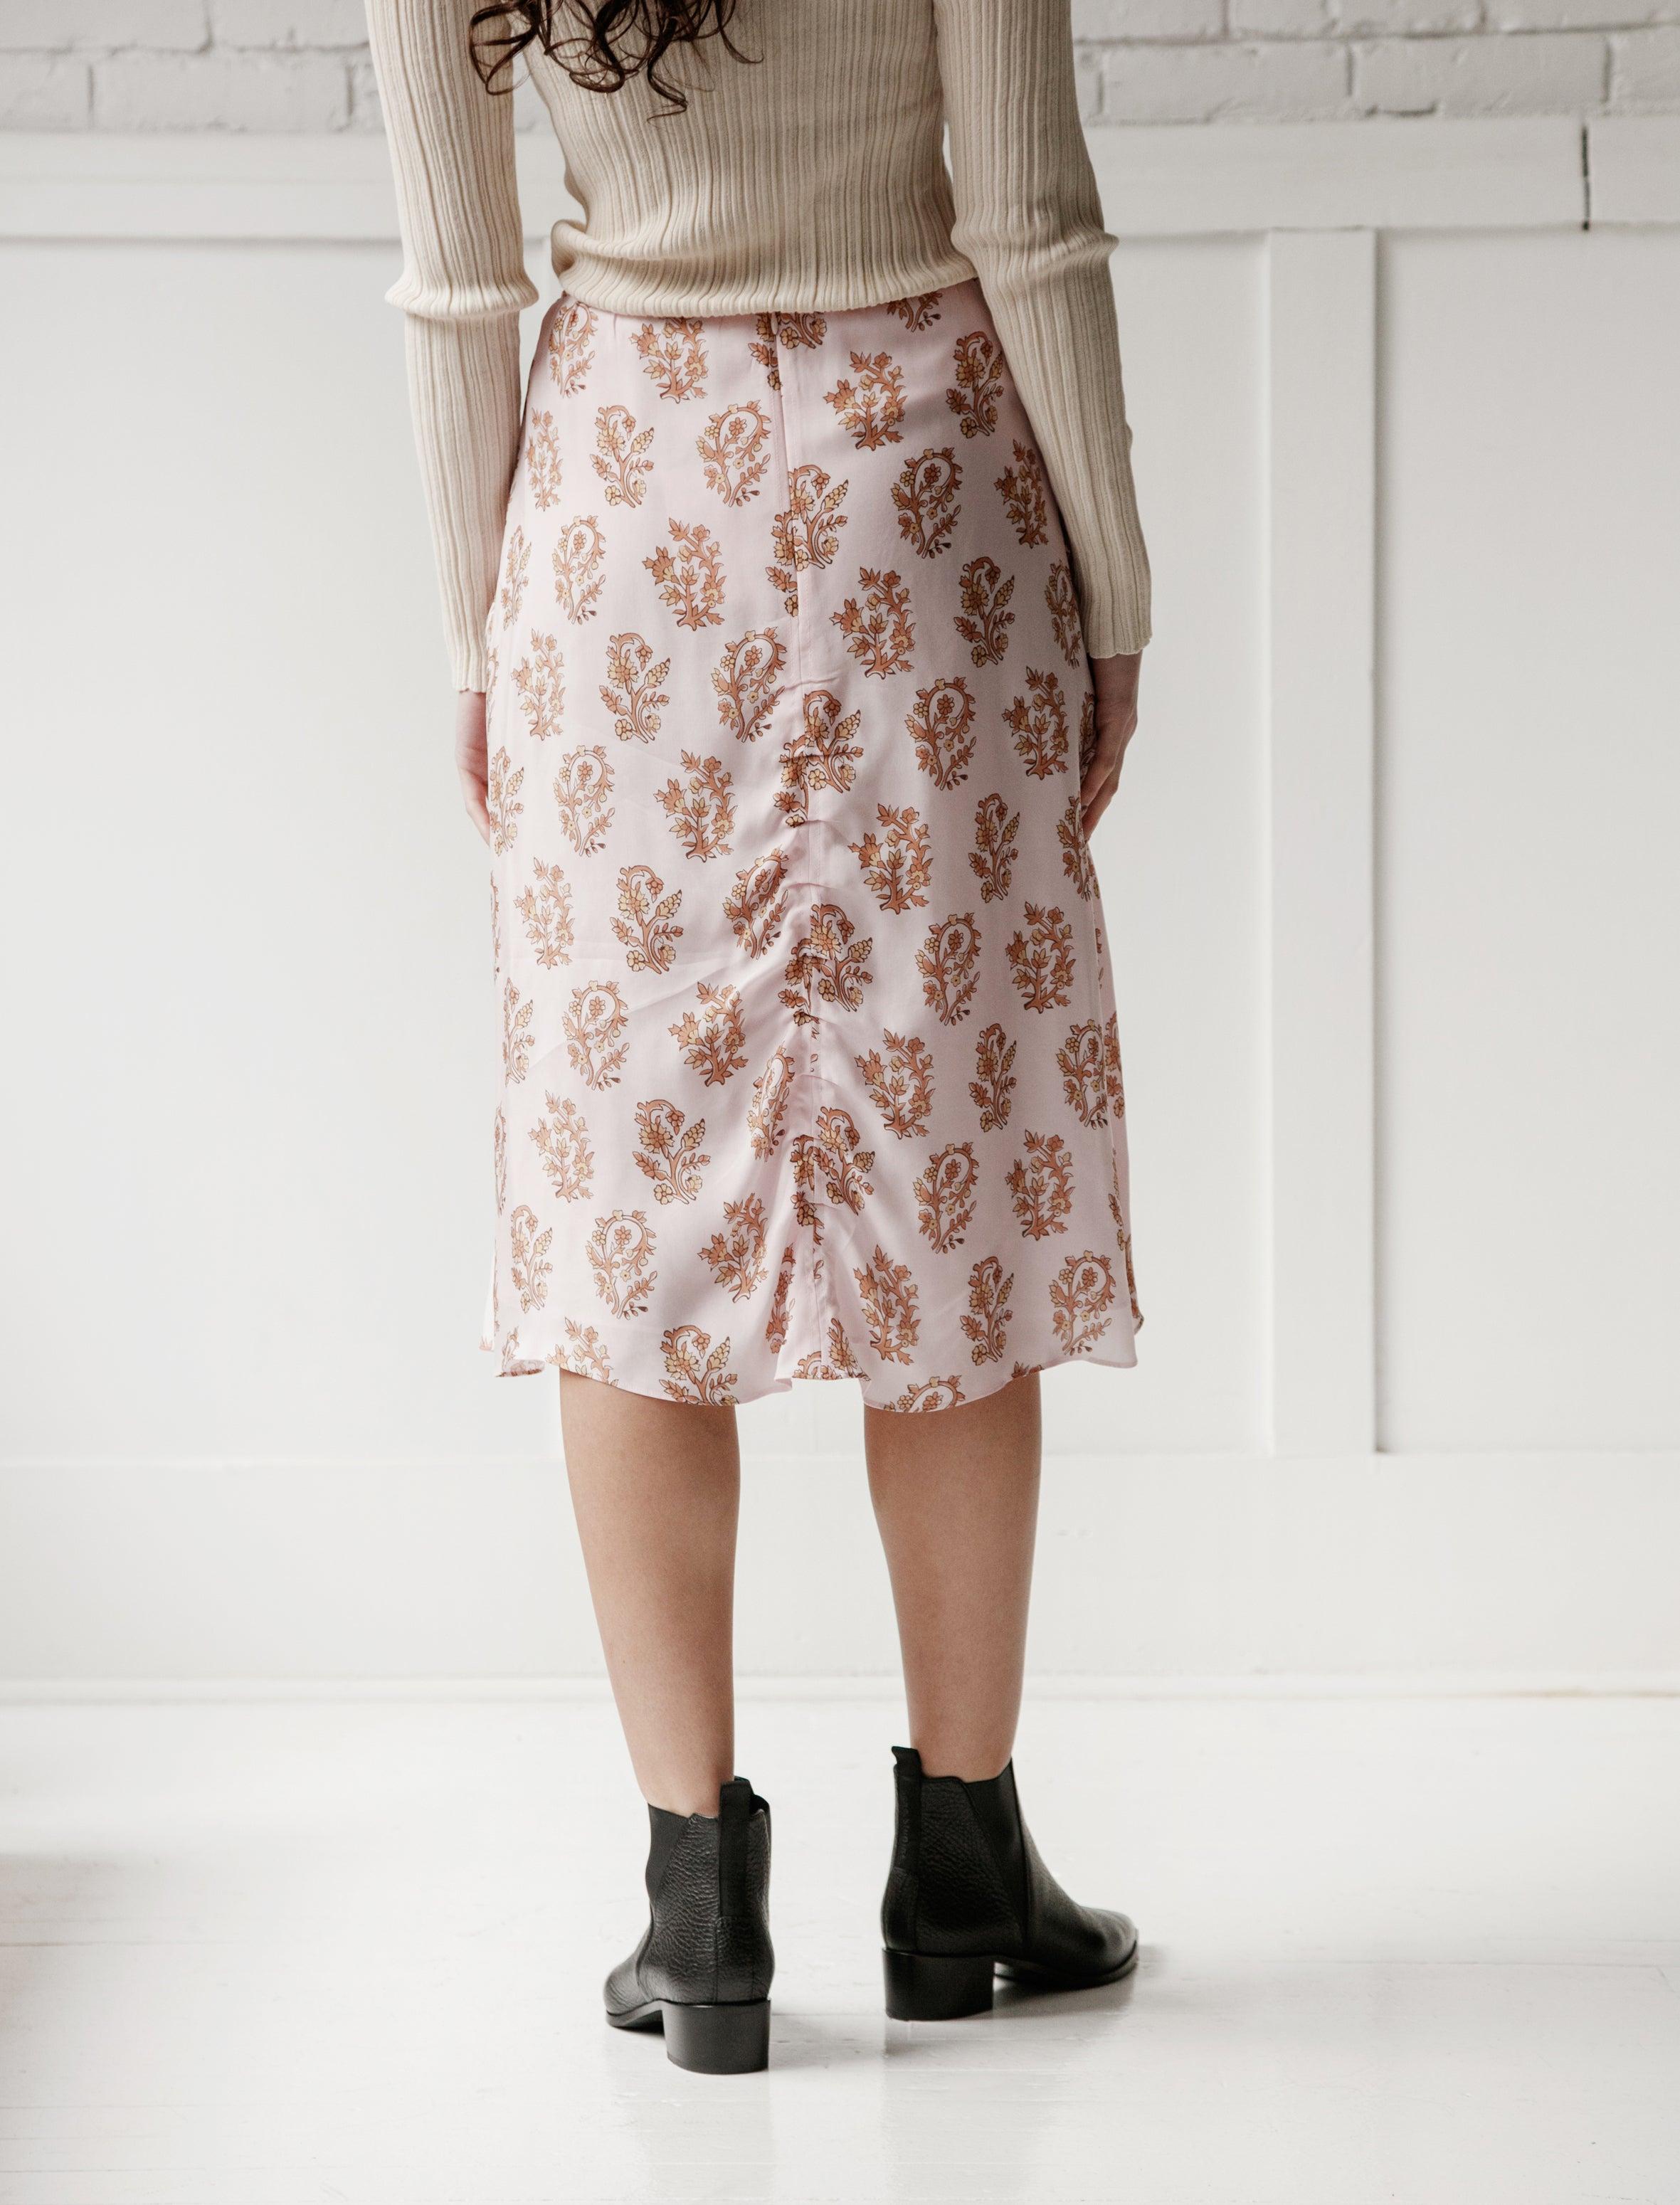 Acne Studios Iza Flower Skirt Pink/Orange